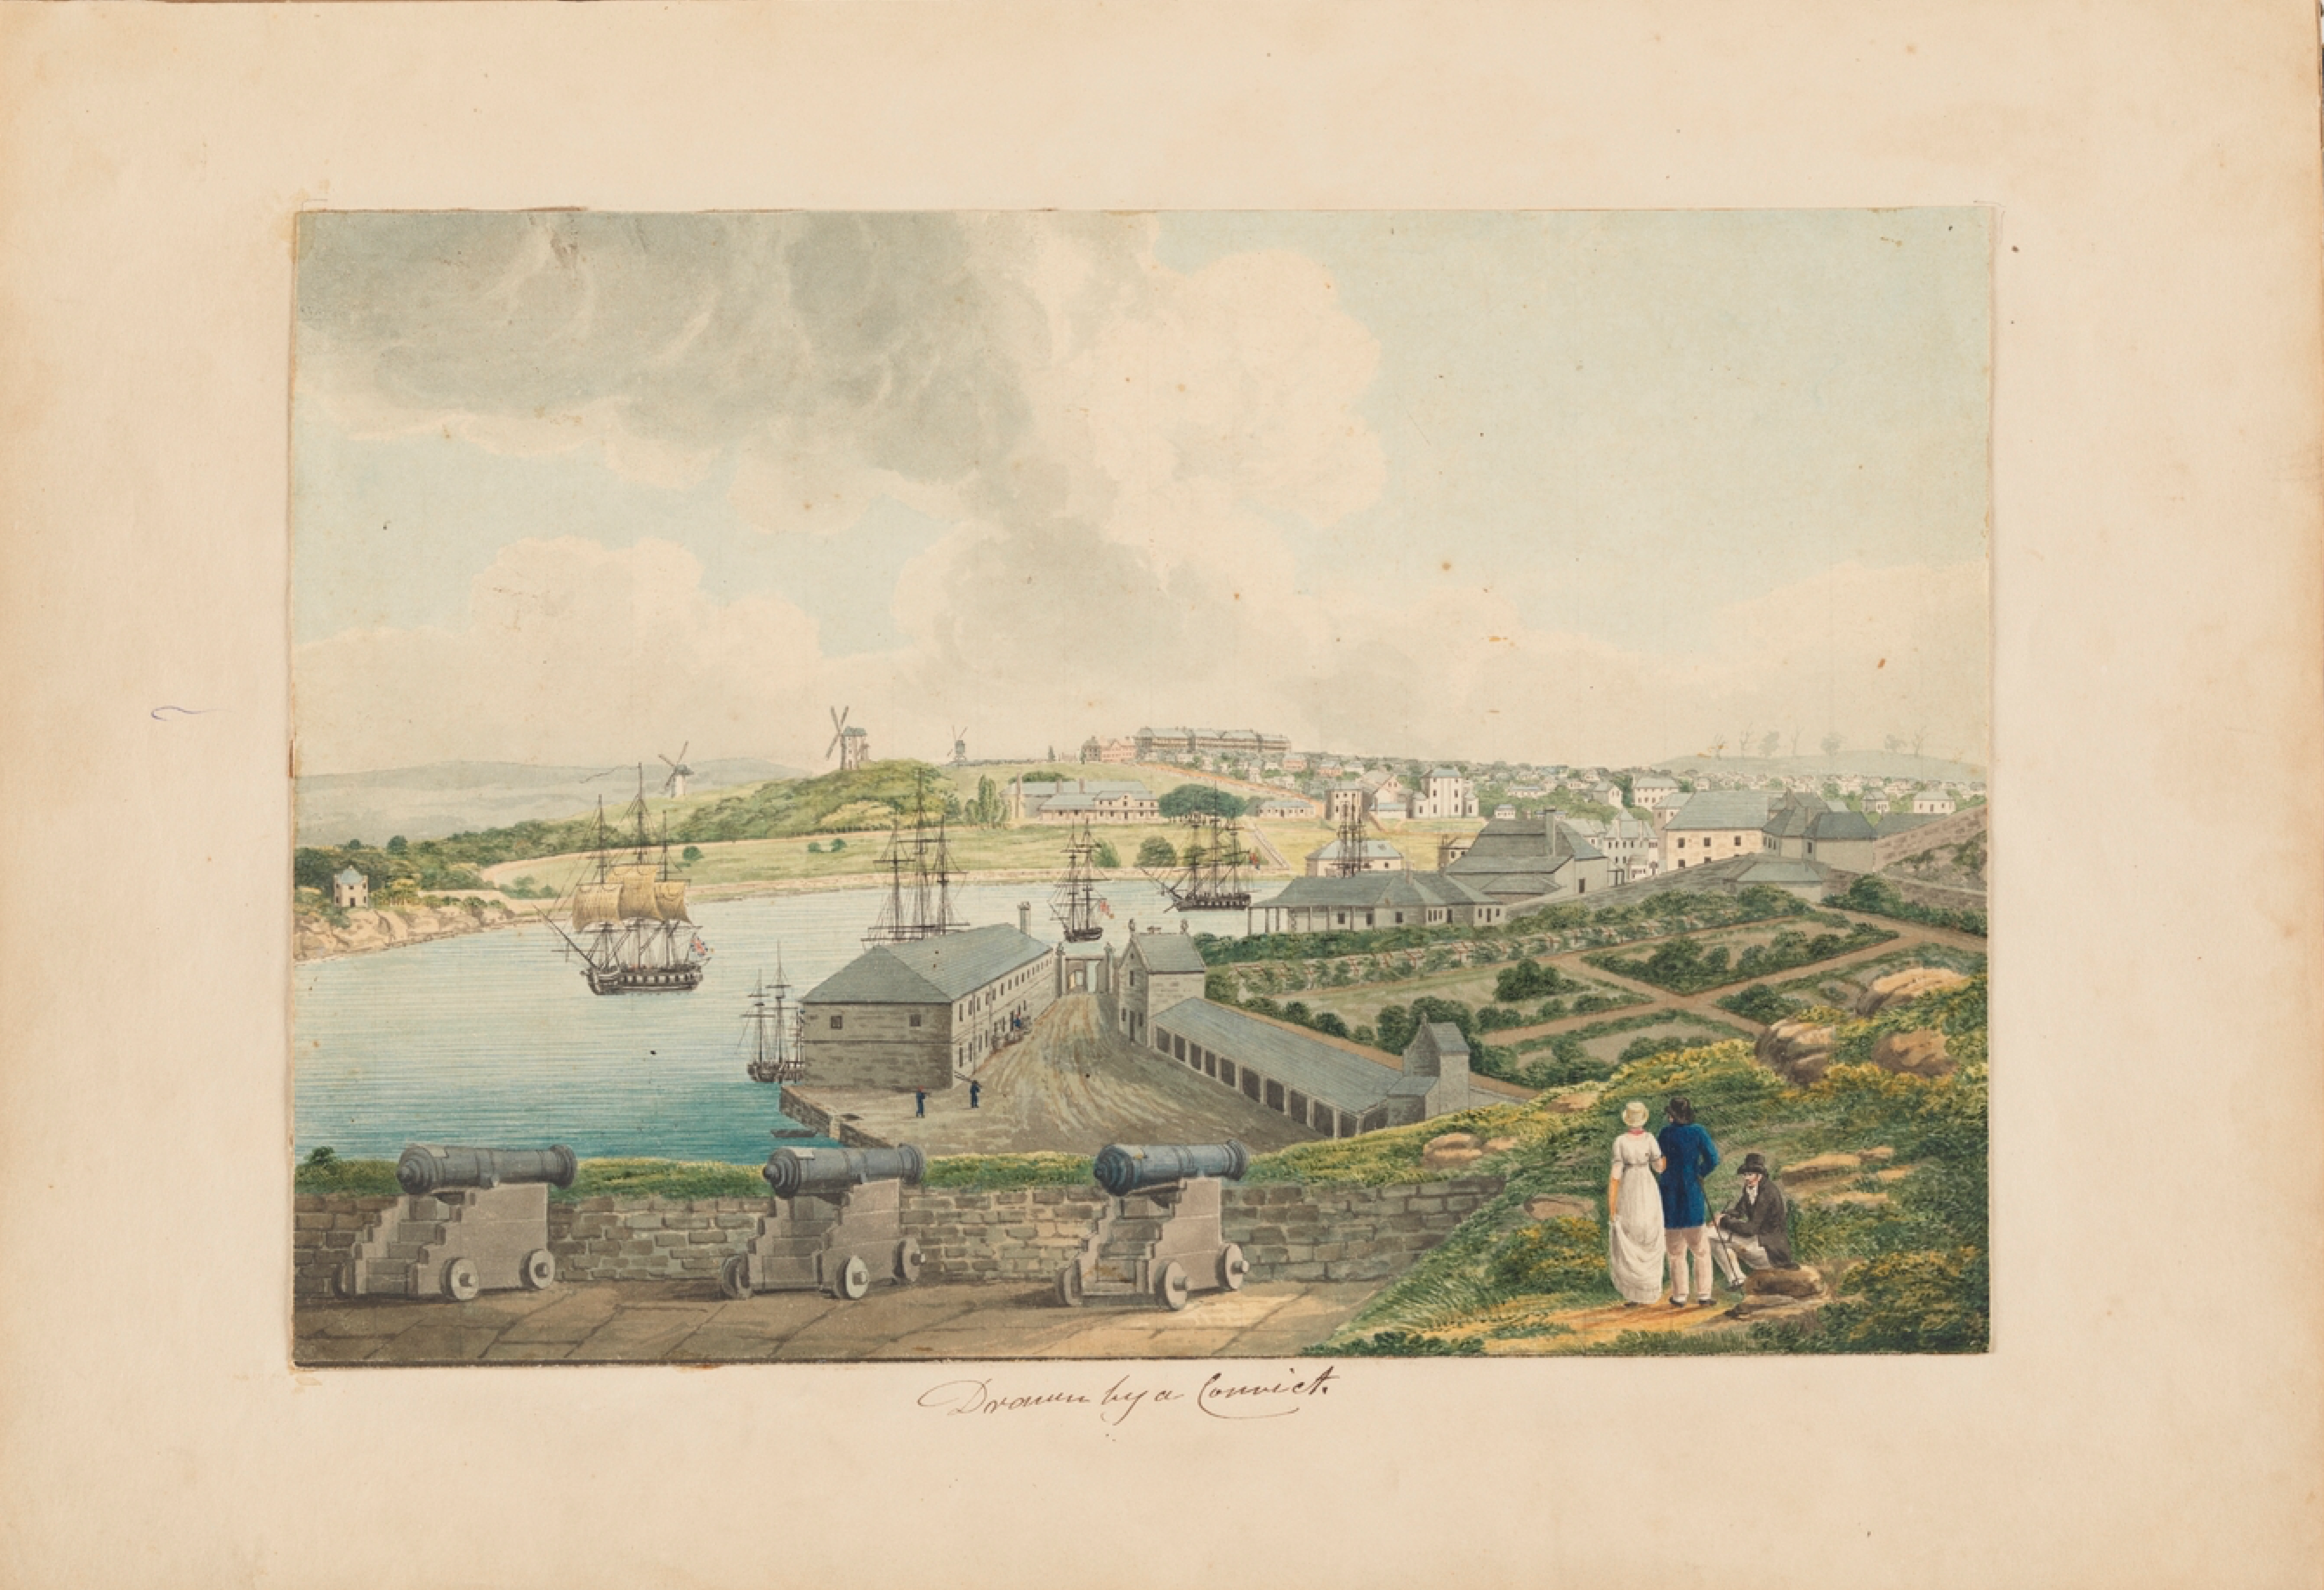 View of Sydney Cove, by Joseph Lycett